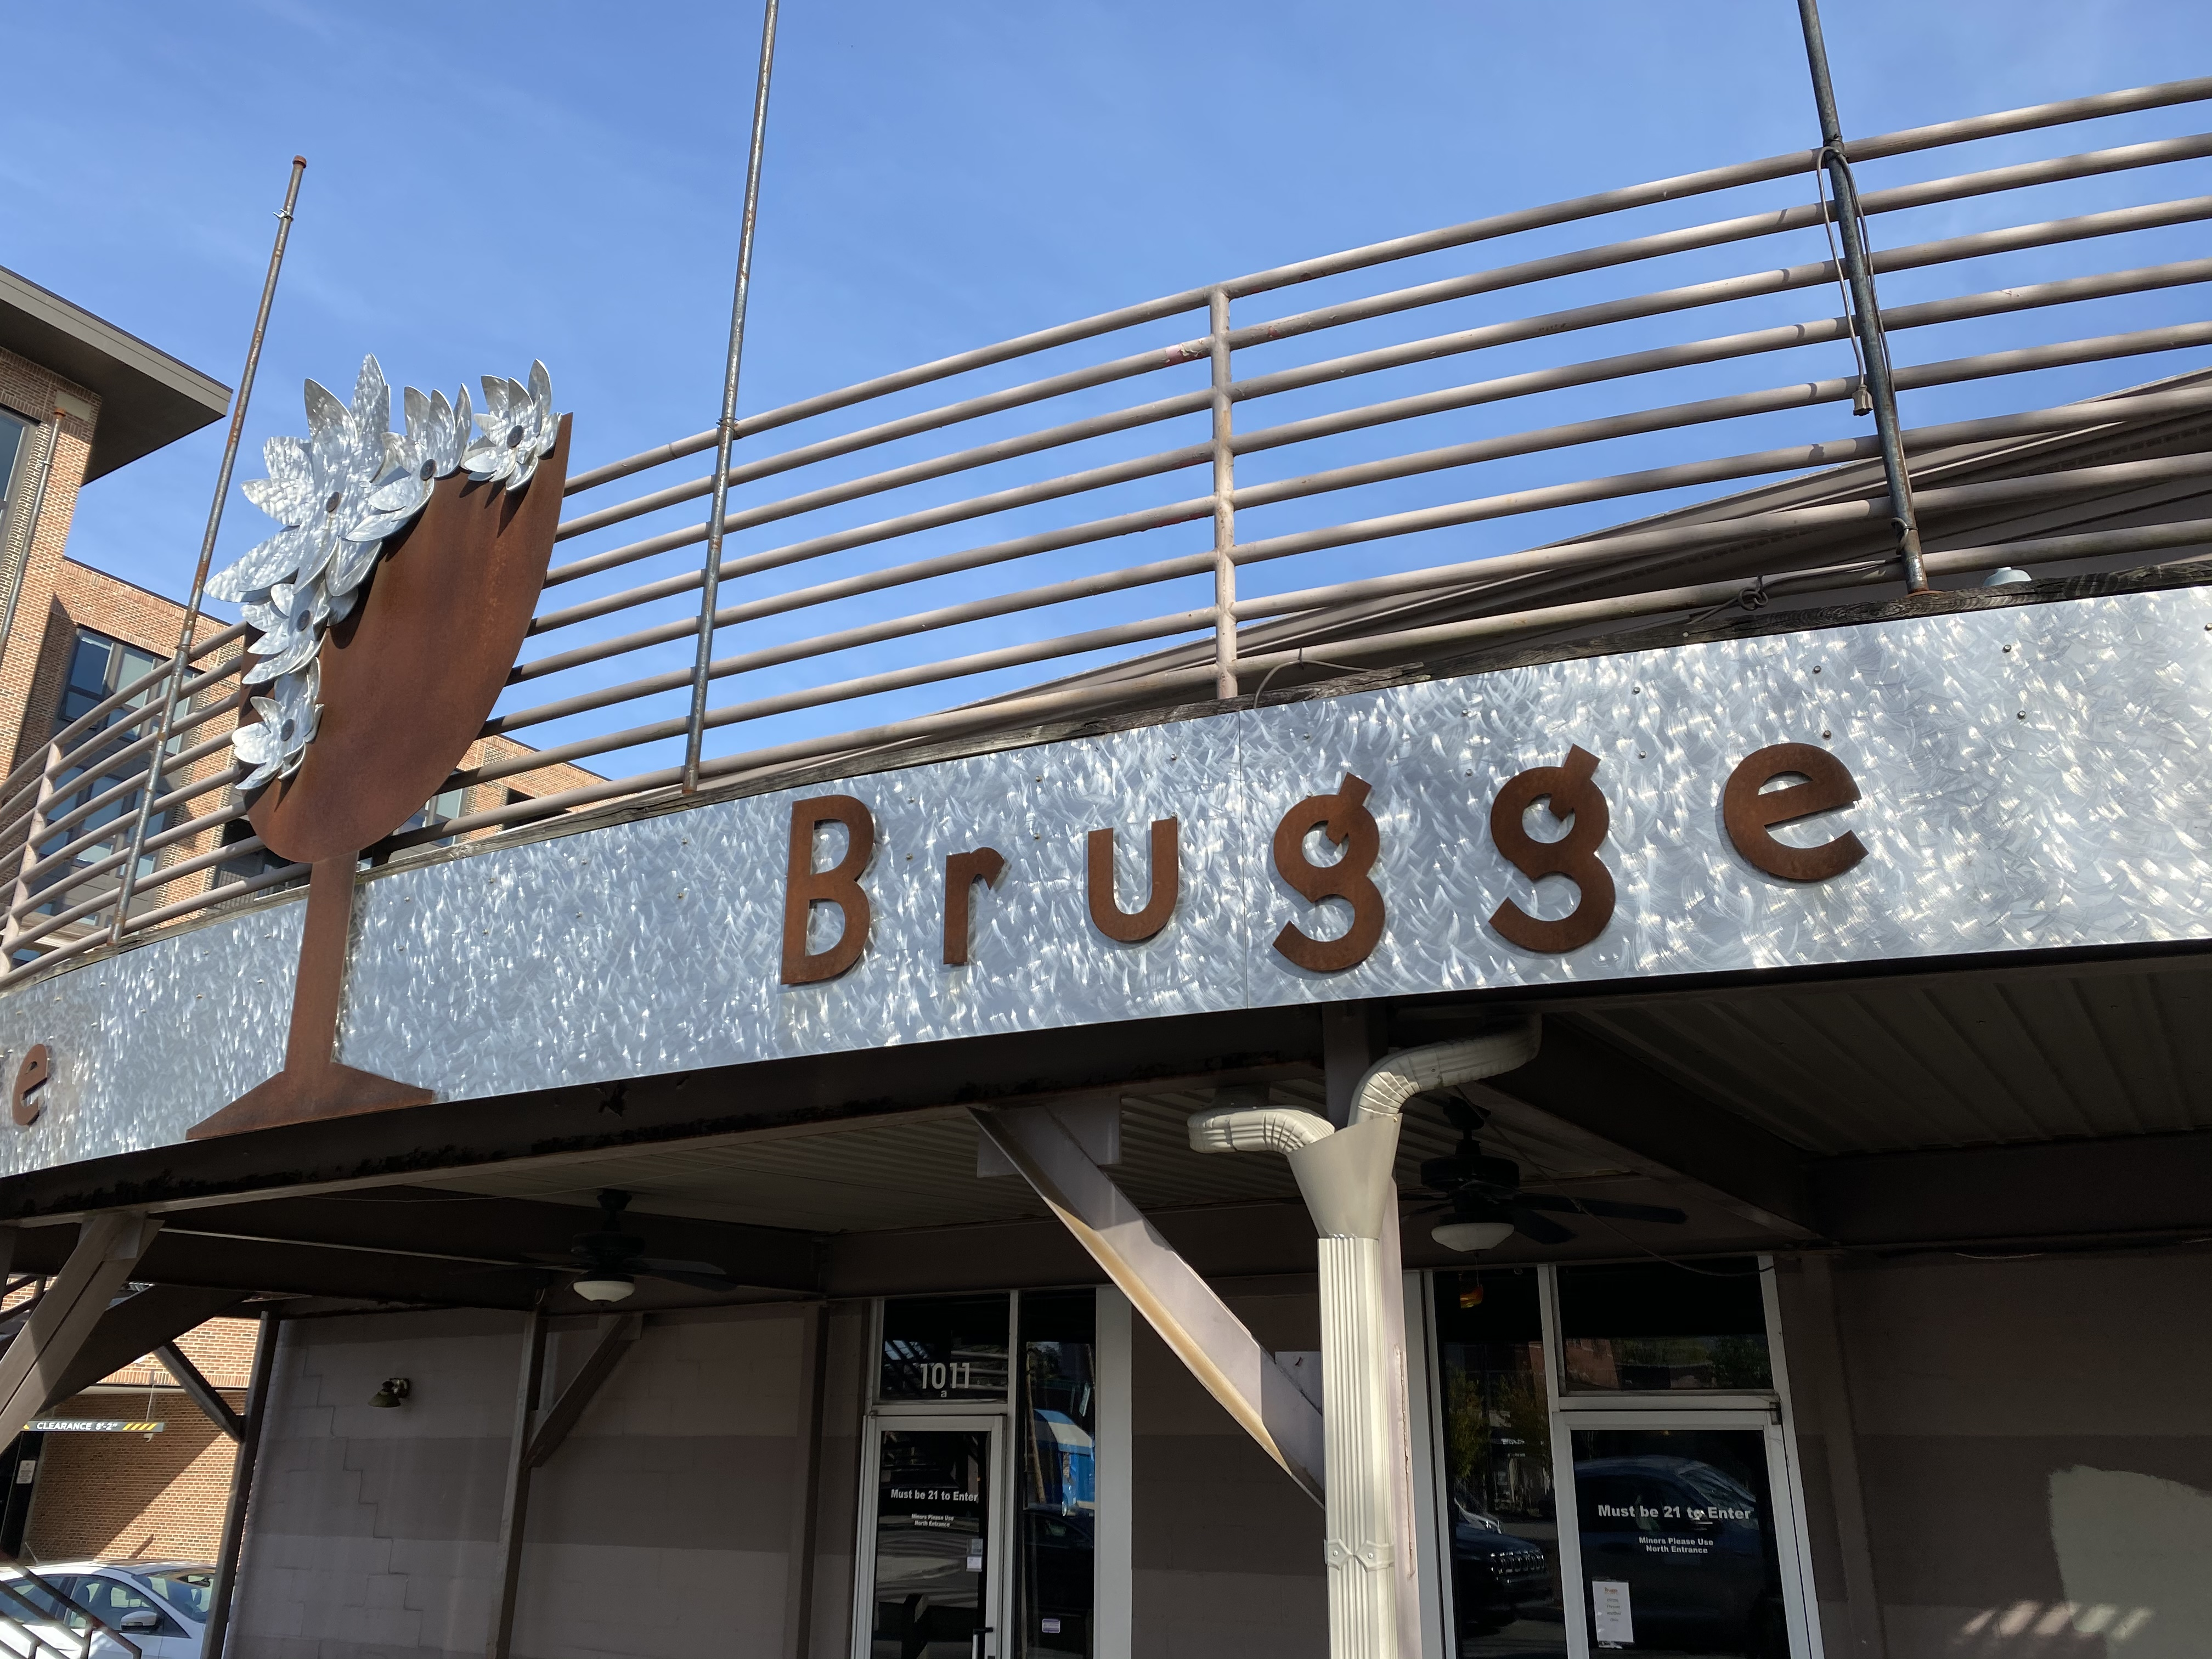 Brugge Brasserie Restaurant & Brewery Equipment Online Auction In Indianapolis, IN